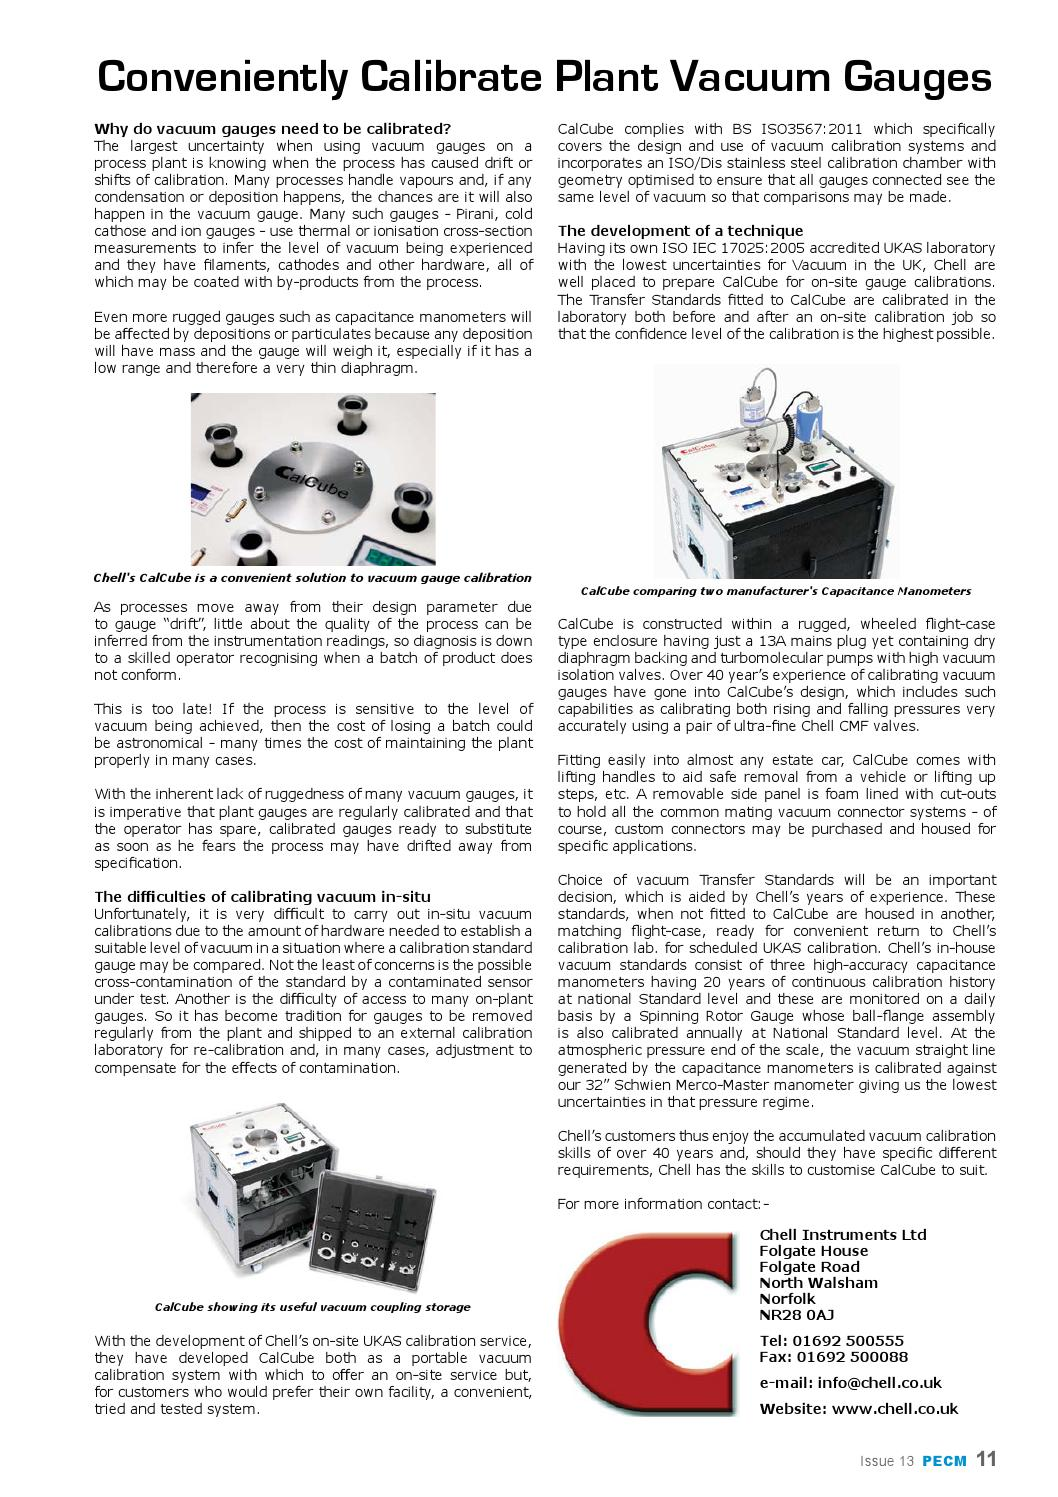 PECM - Issue 13 2015 by MH Media Global - issuu